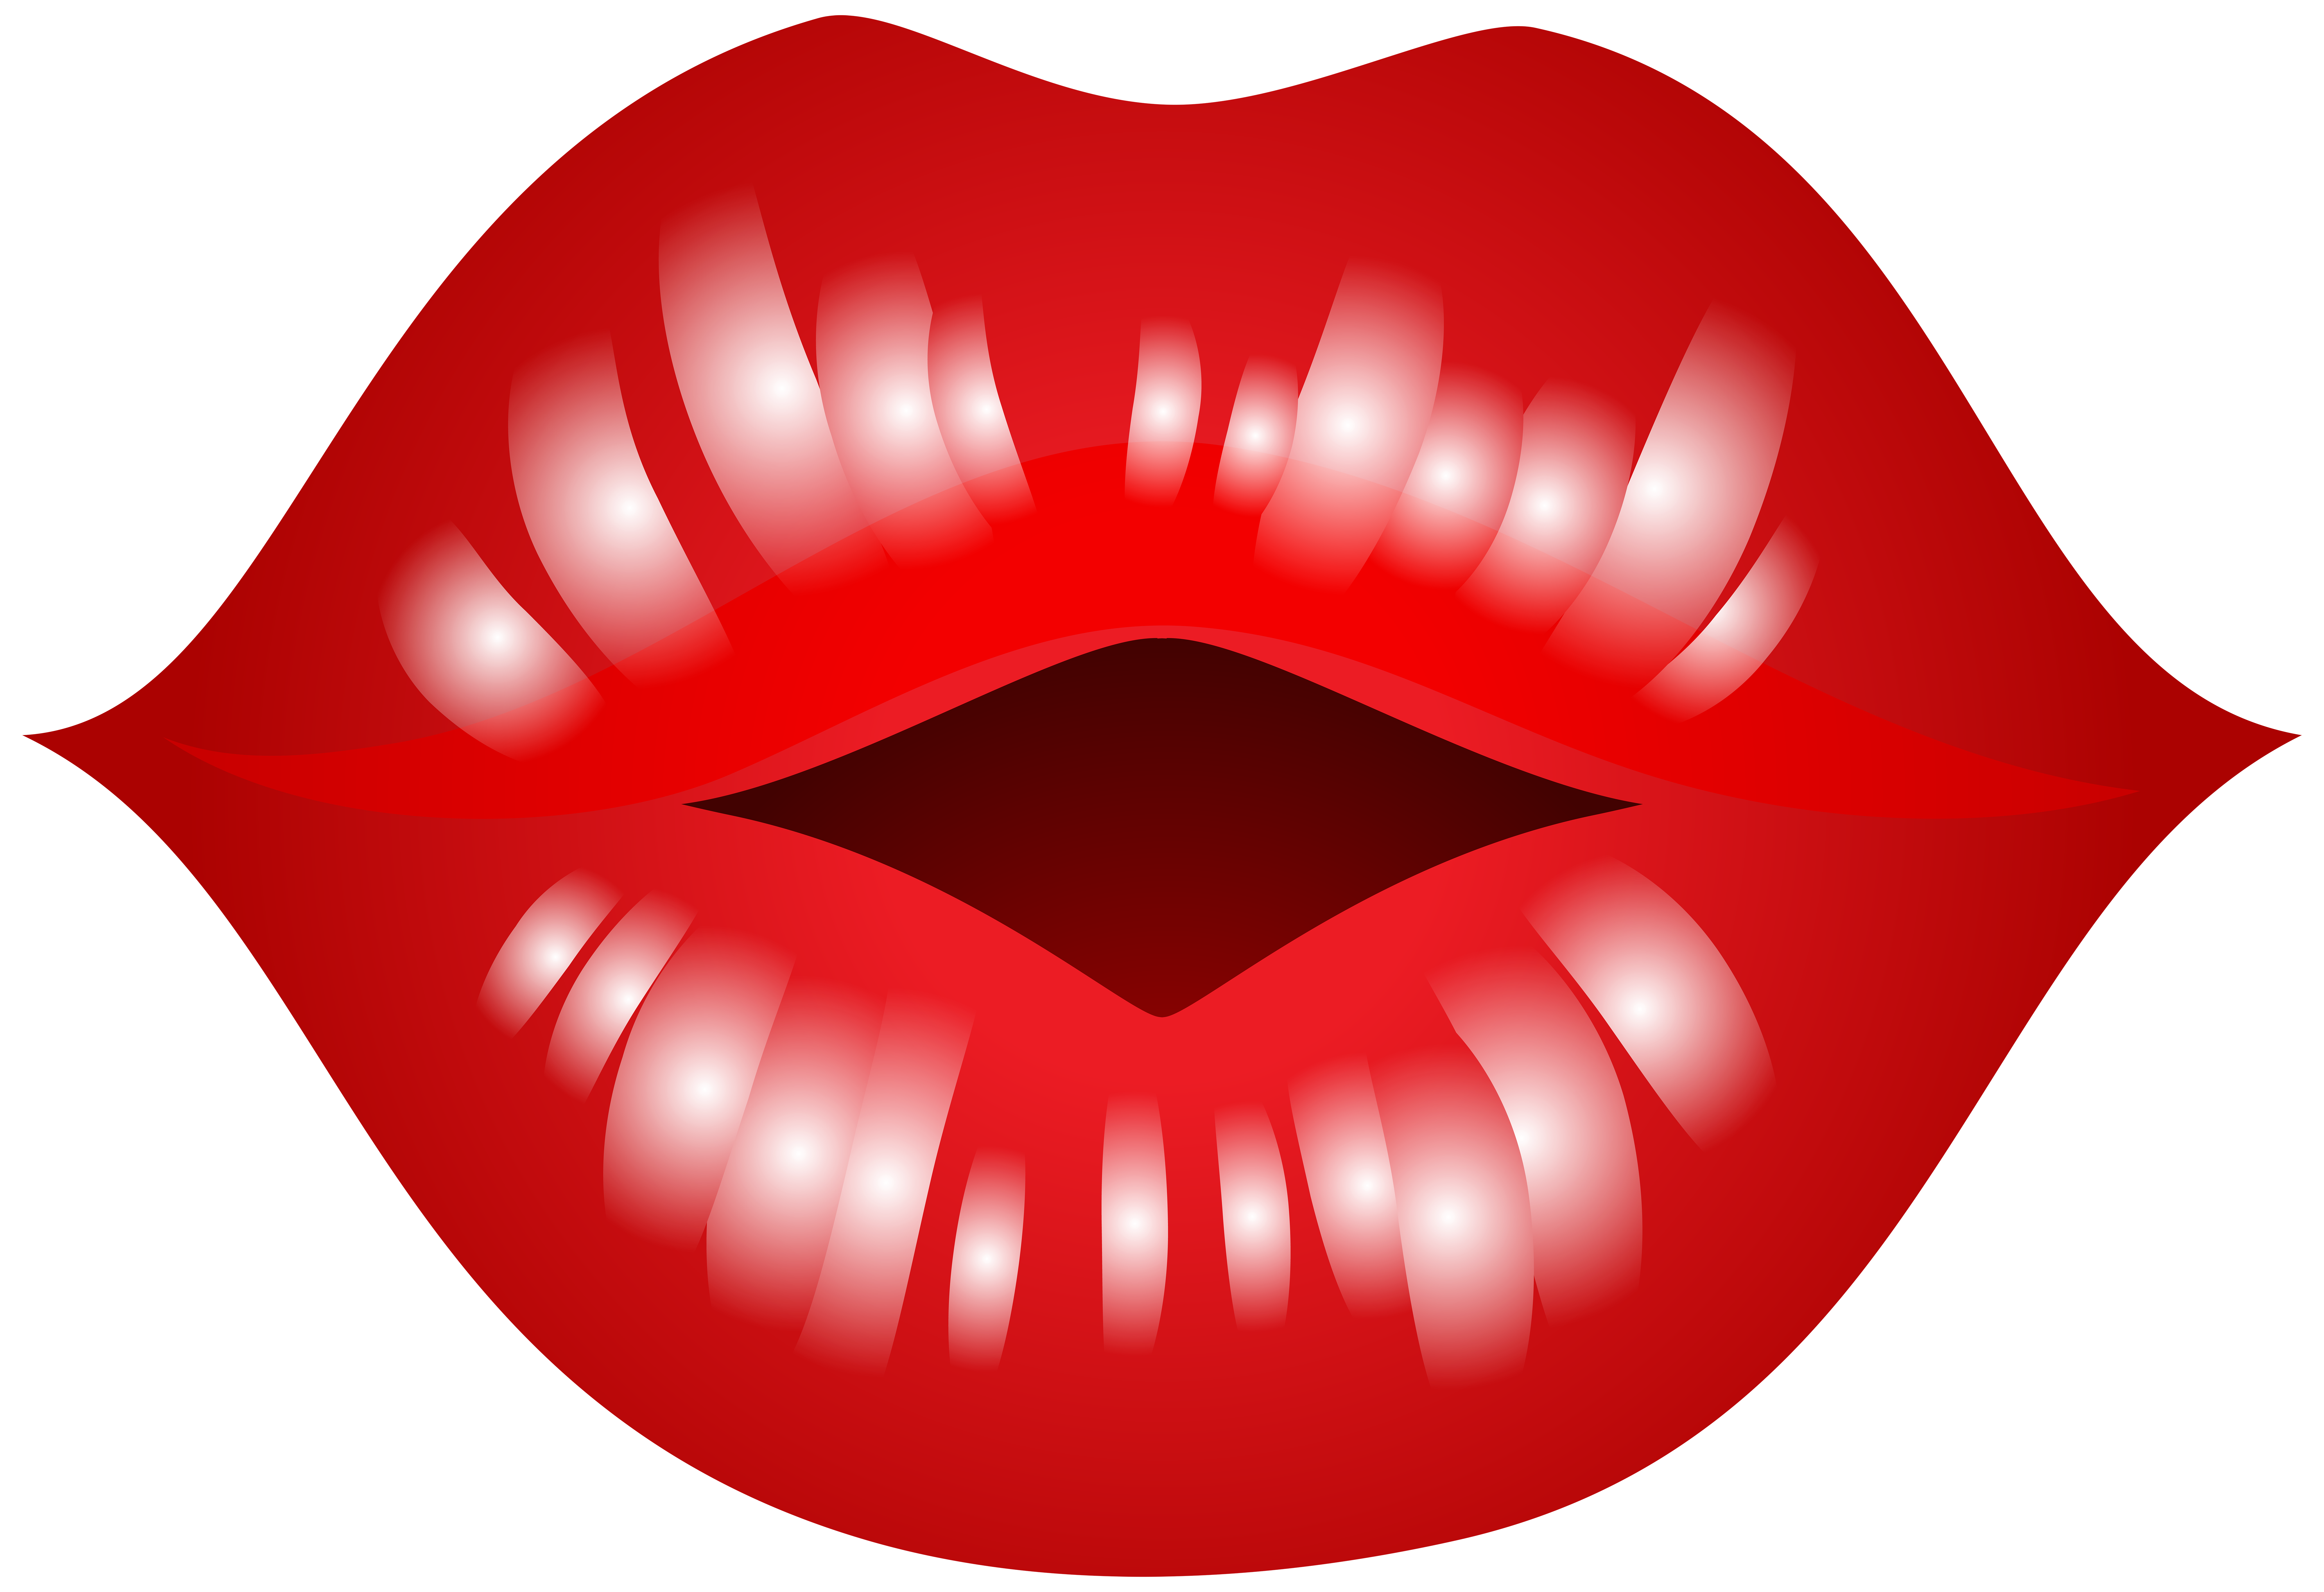 Kiss clipart free - ... View full size